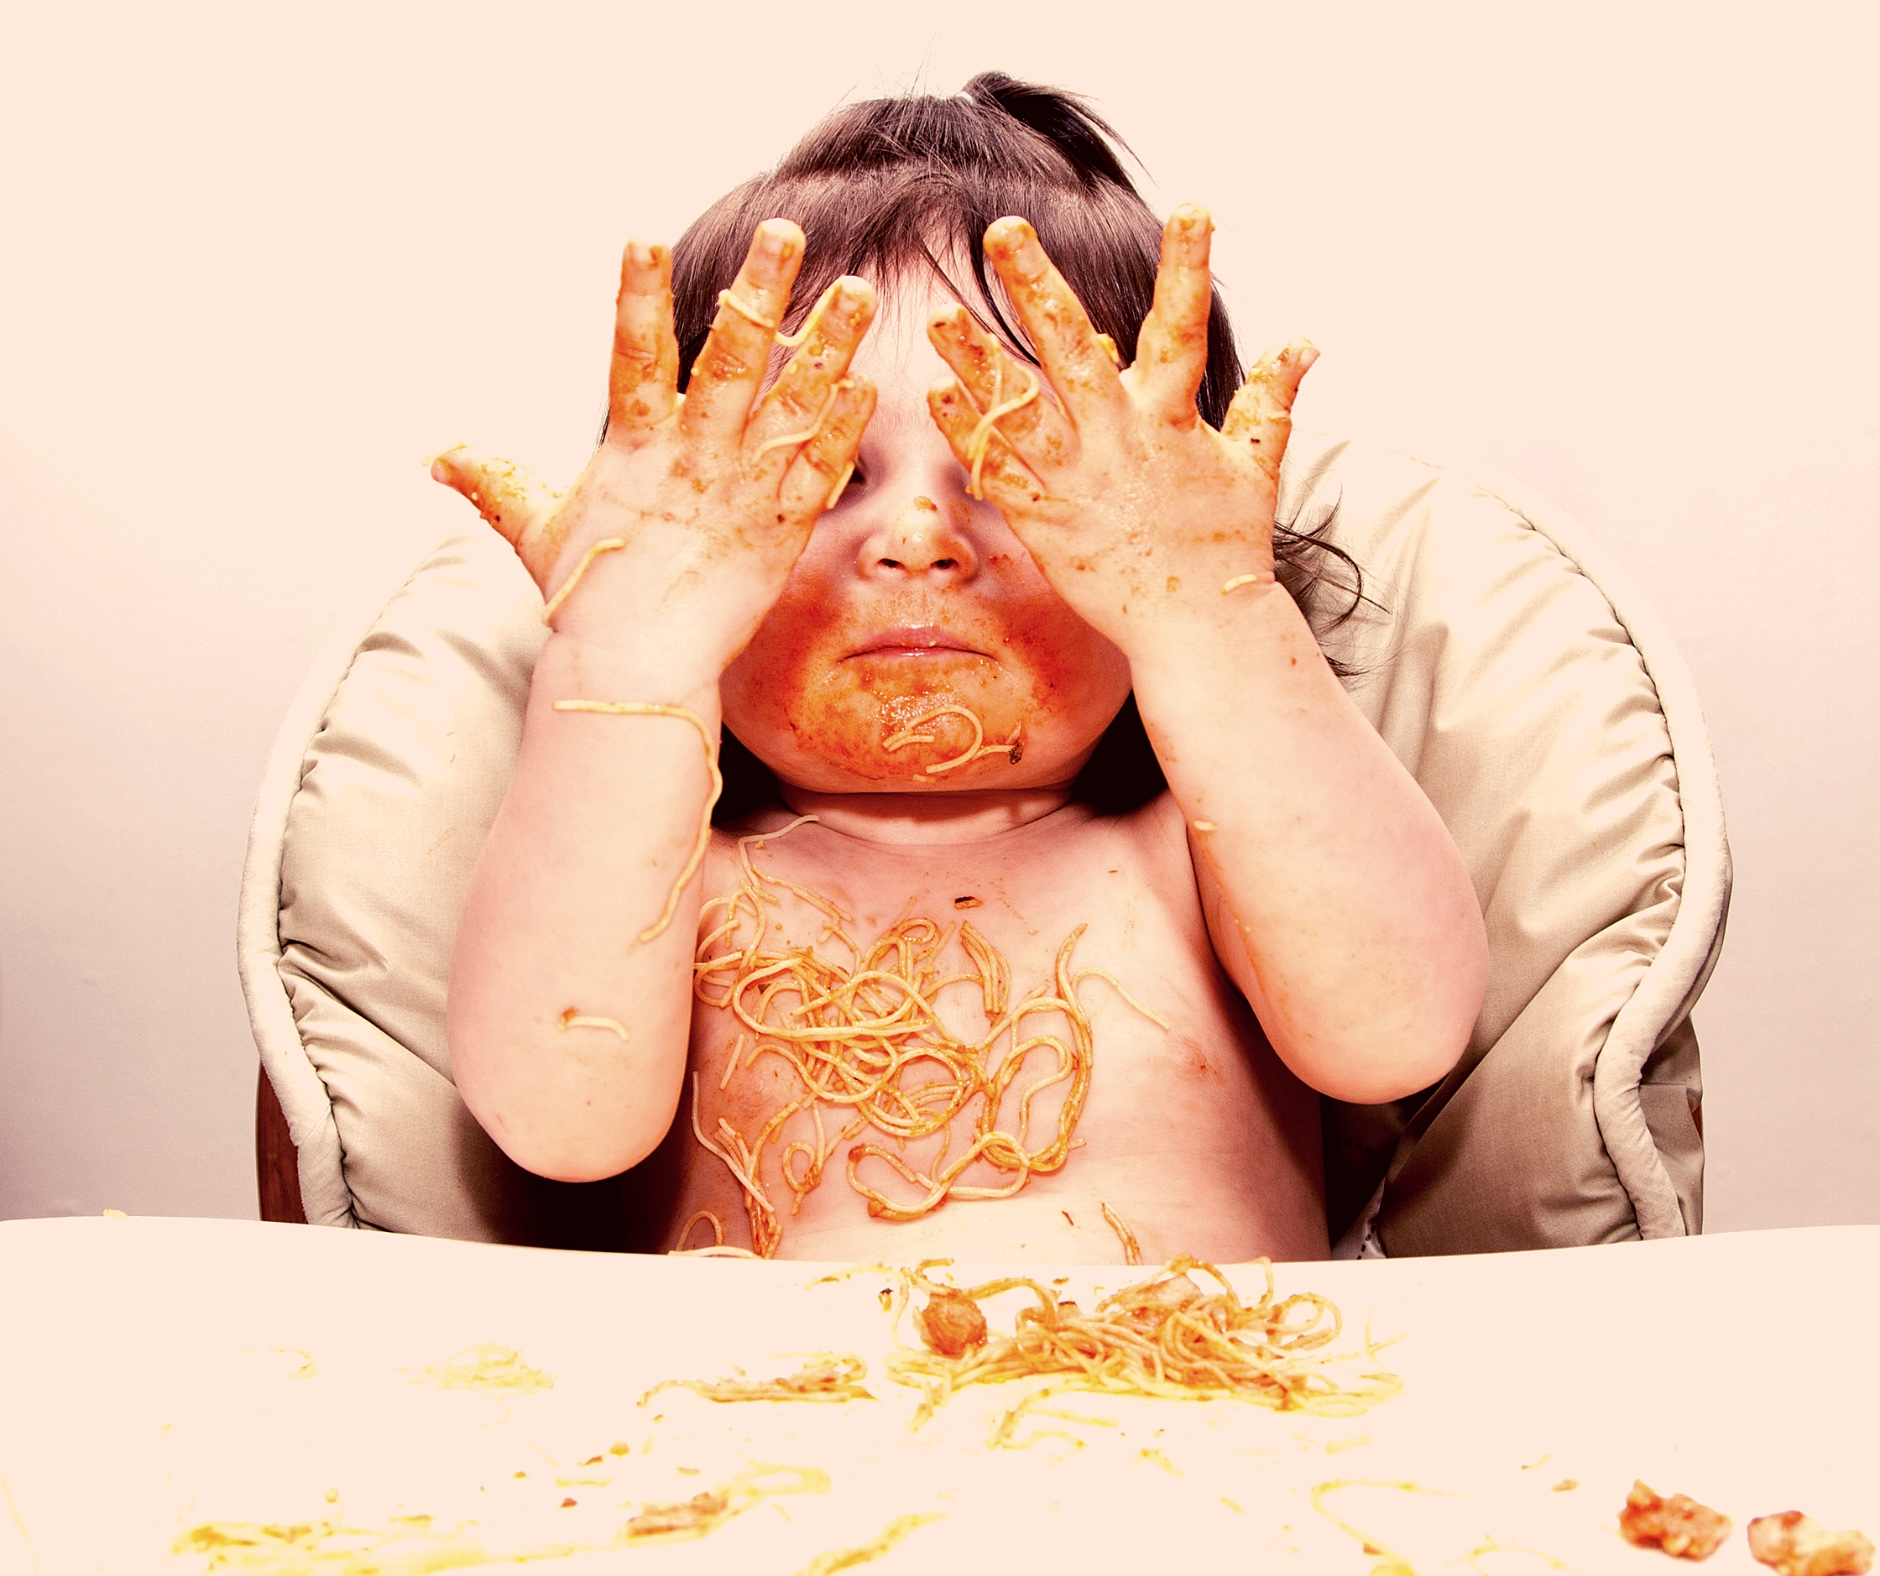 White dark hair Baby eating spaghetti with very messy tray and face.